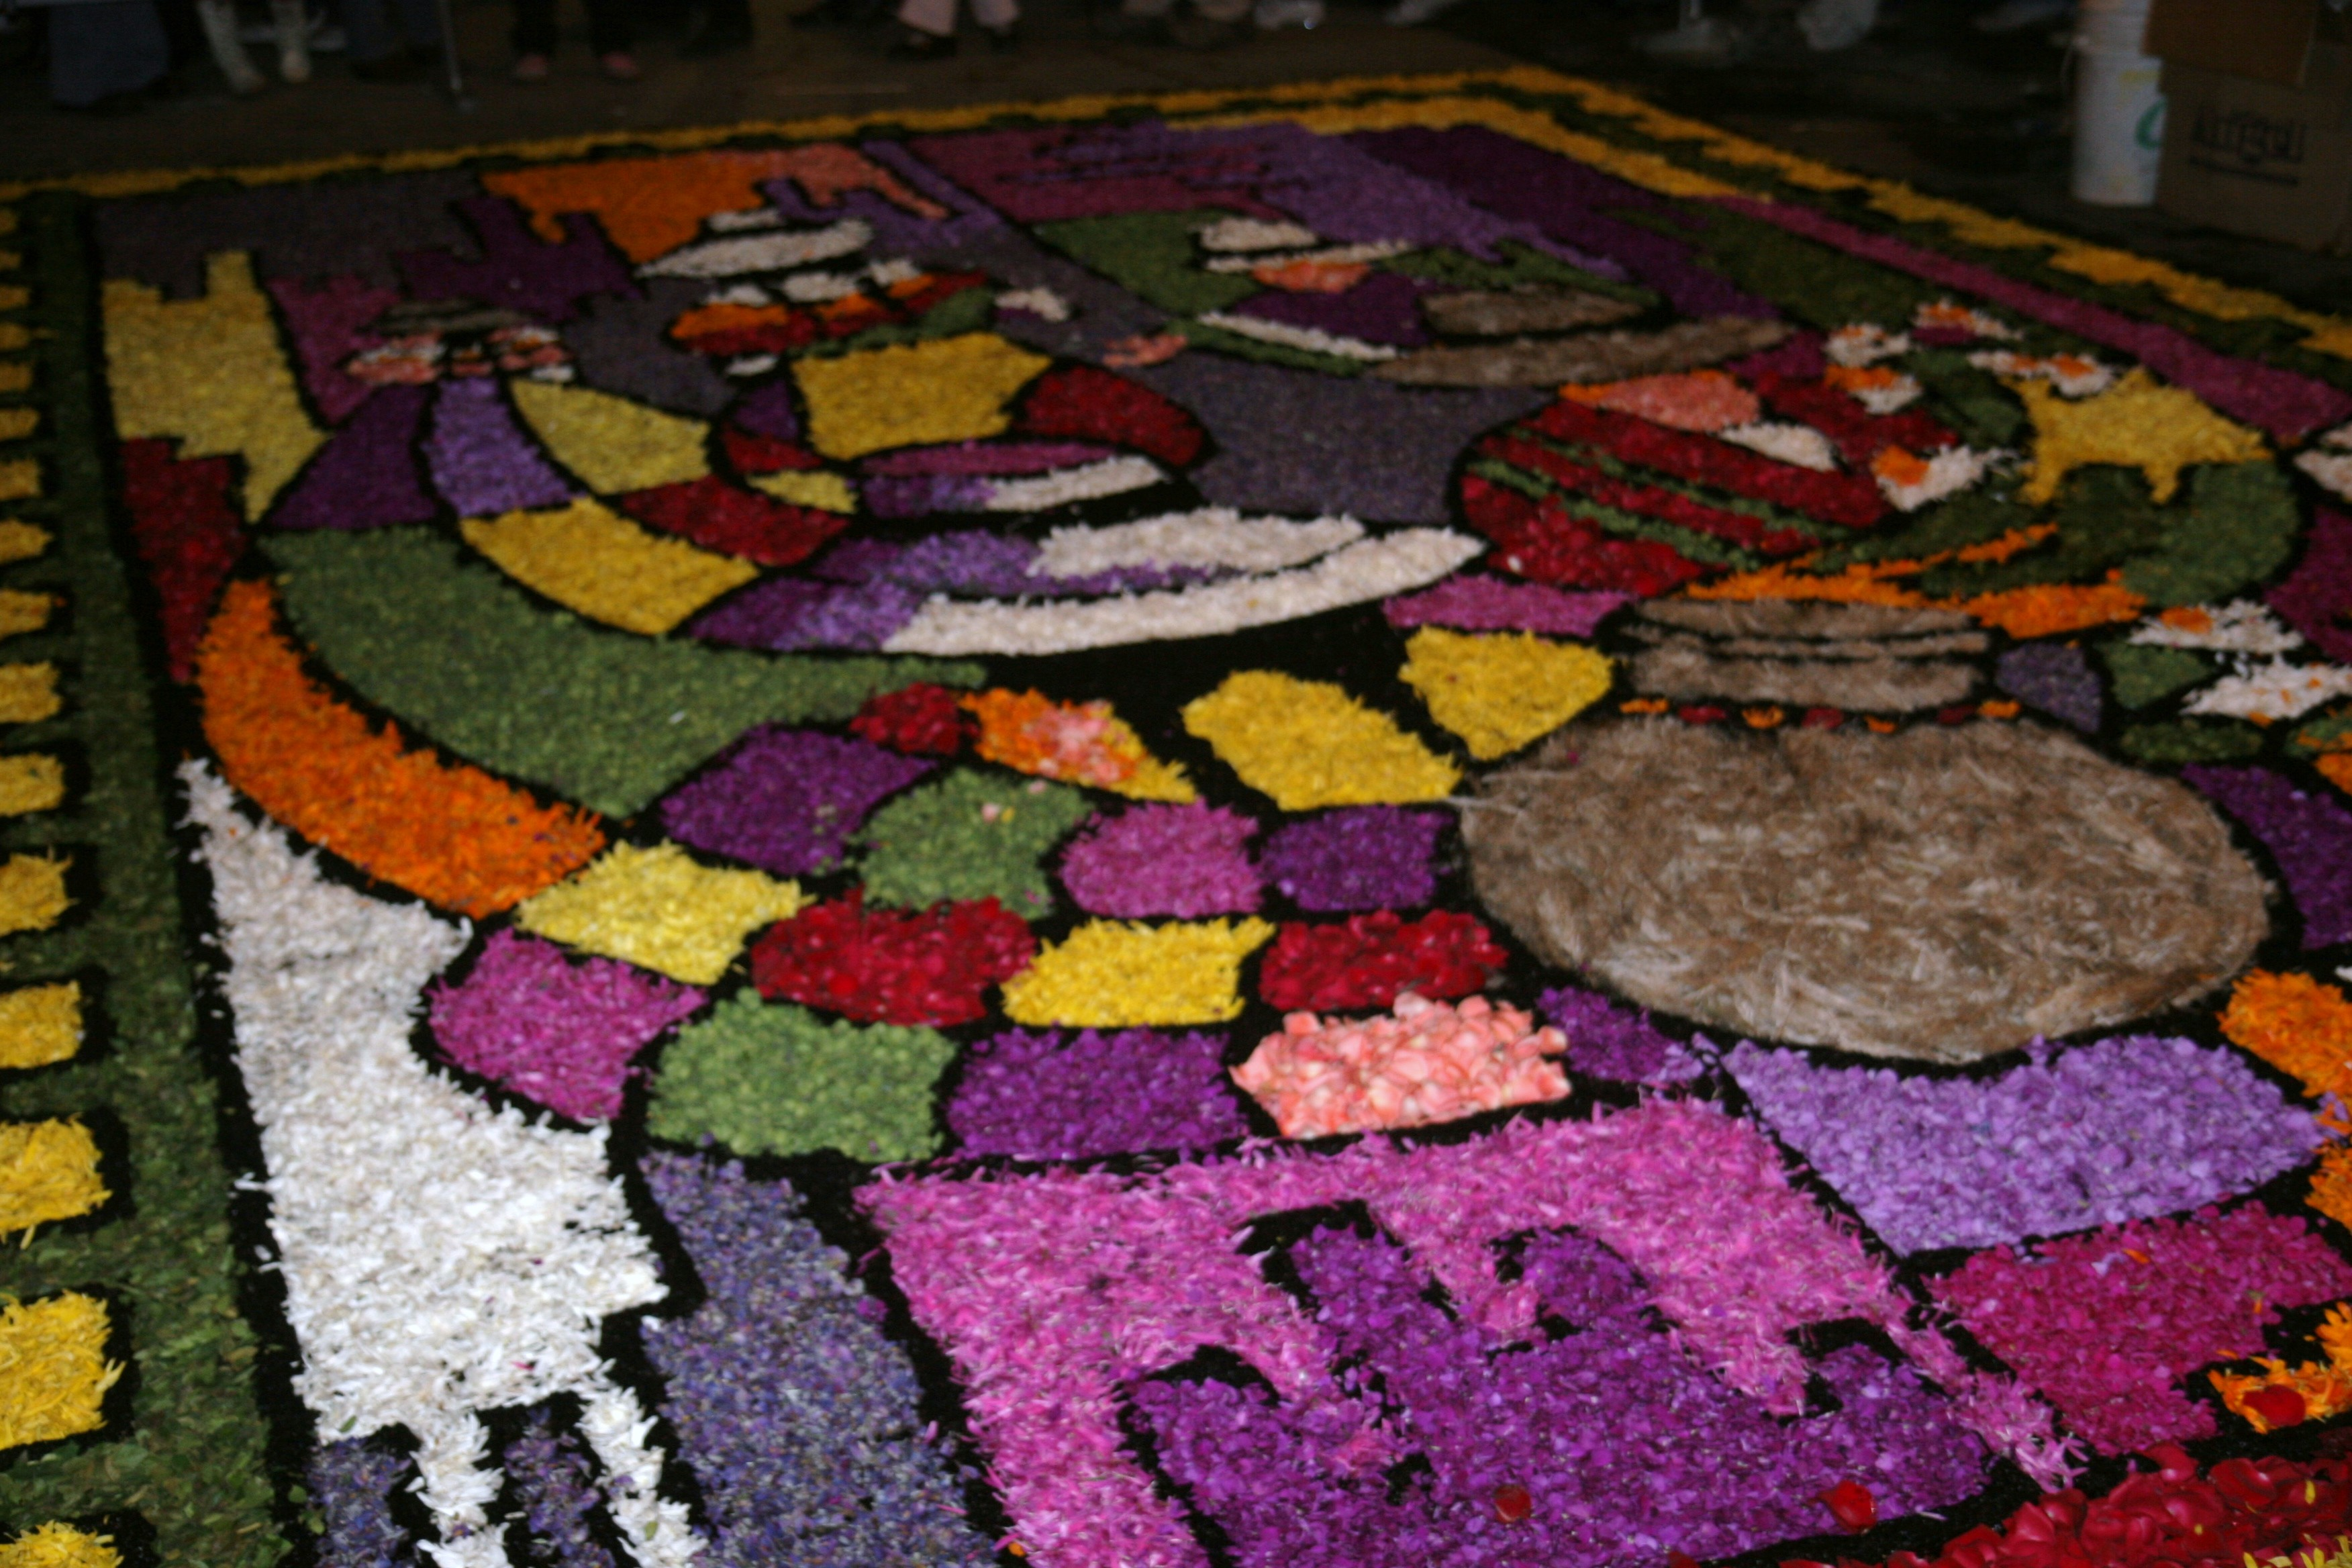 flower carpets in Tarma, Peru for Semana Santa celebrations